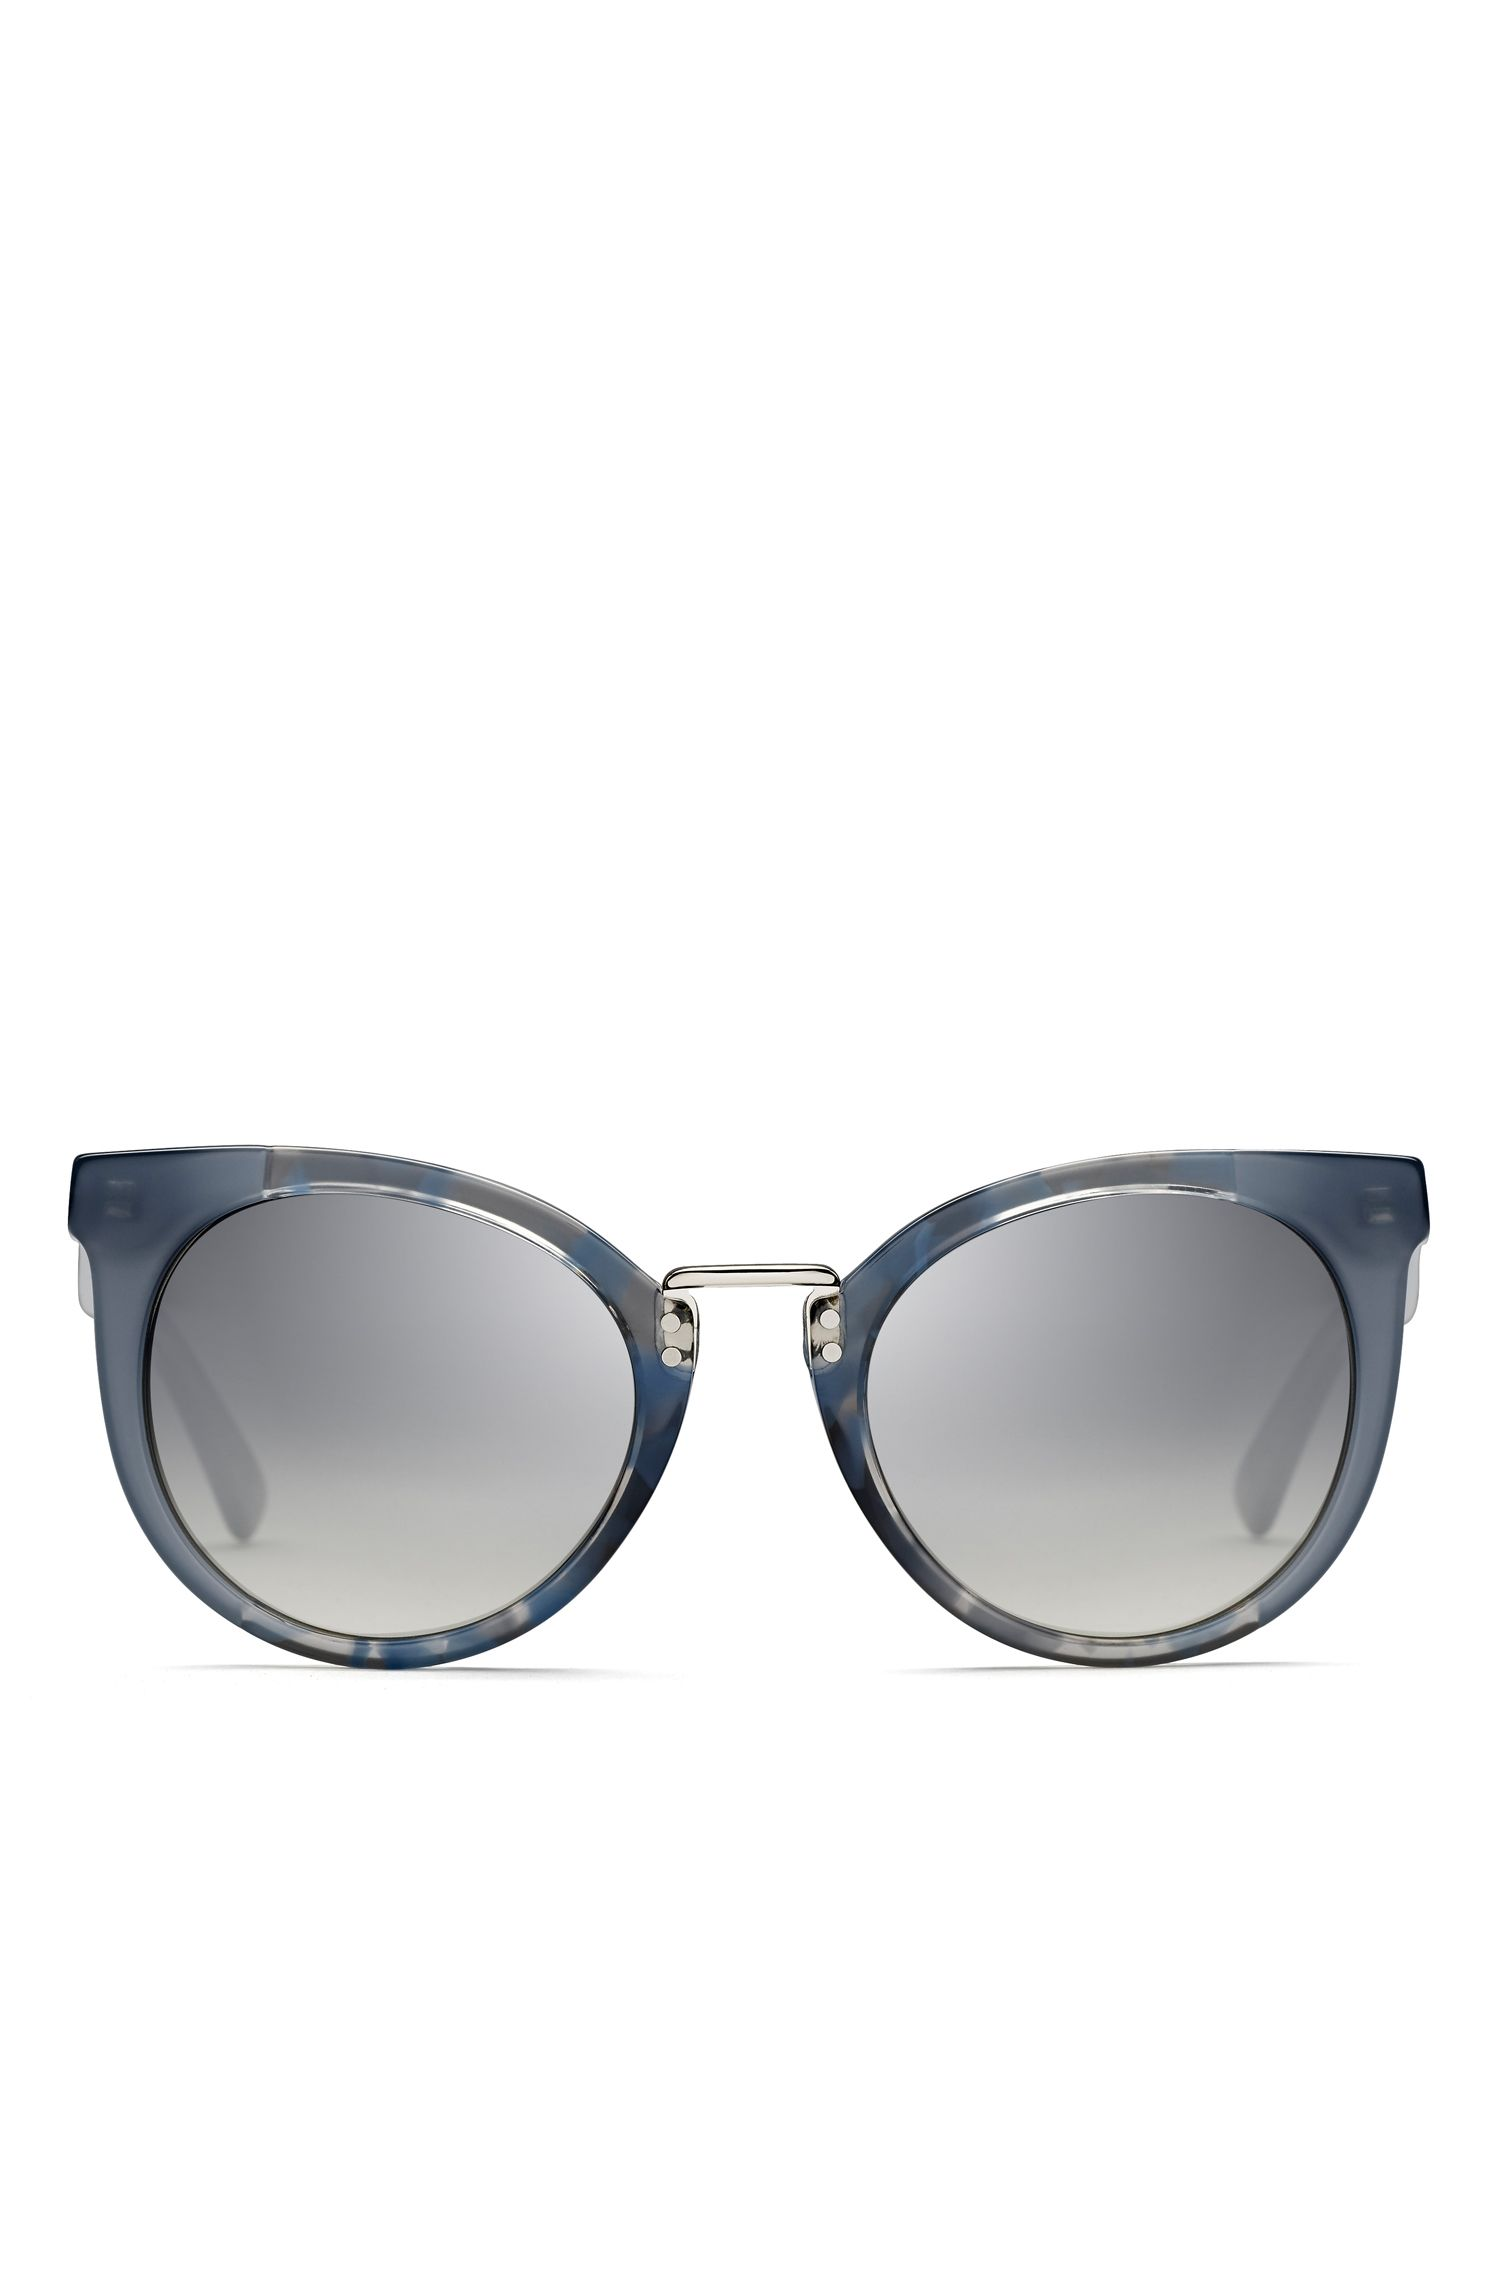 Gray Lens Rounded Cateye Havana Sunglasses | BOSS 0793S